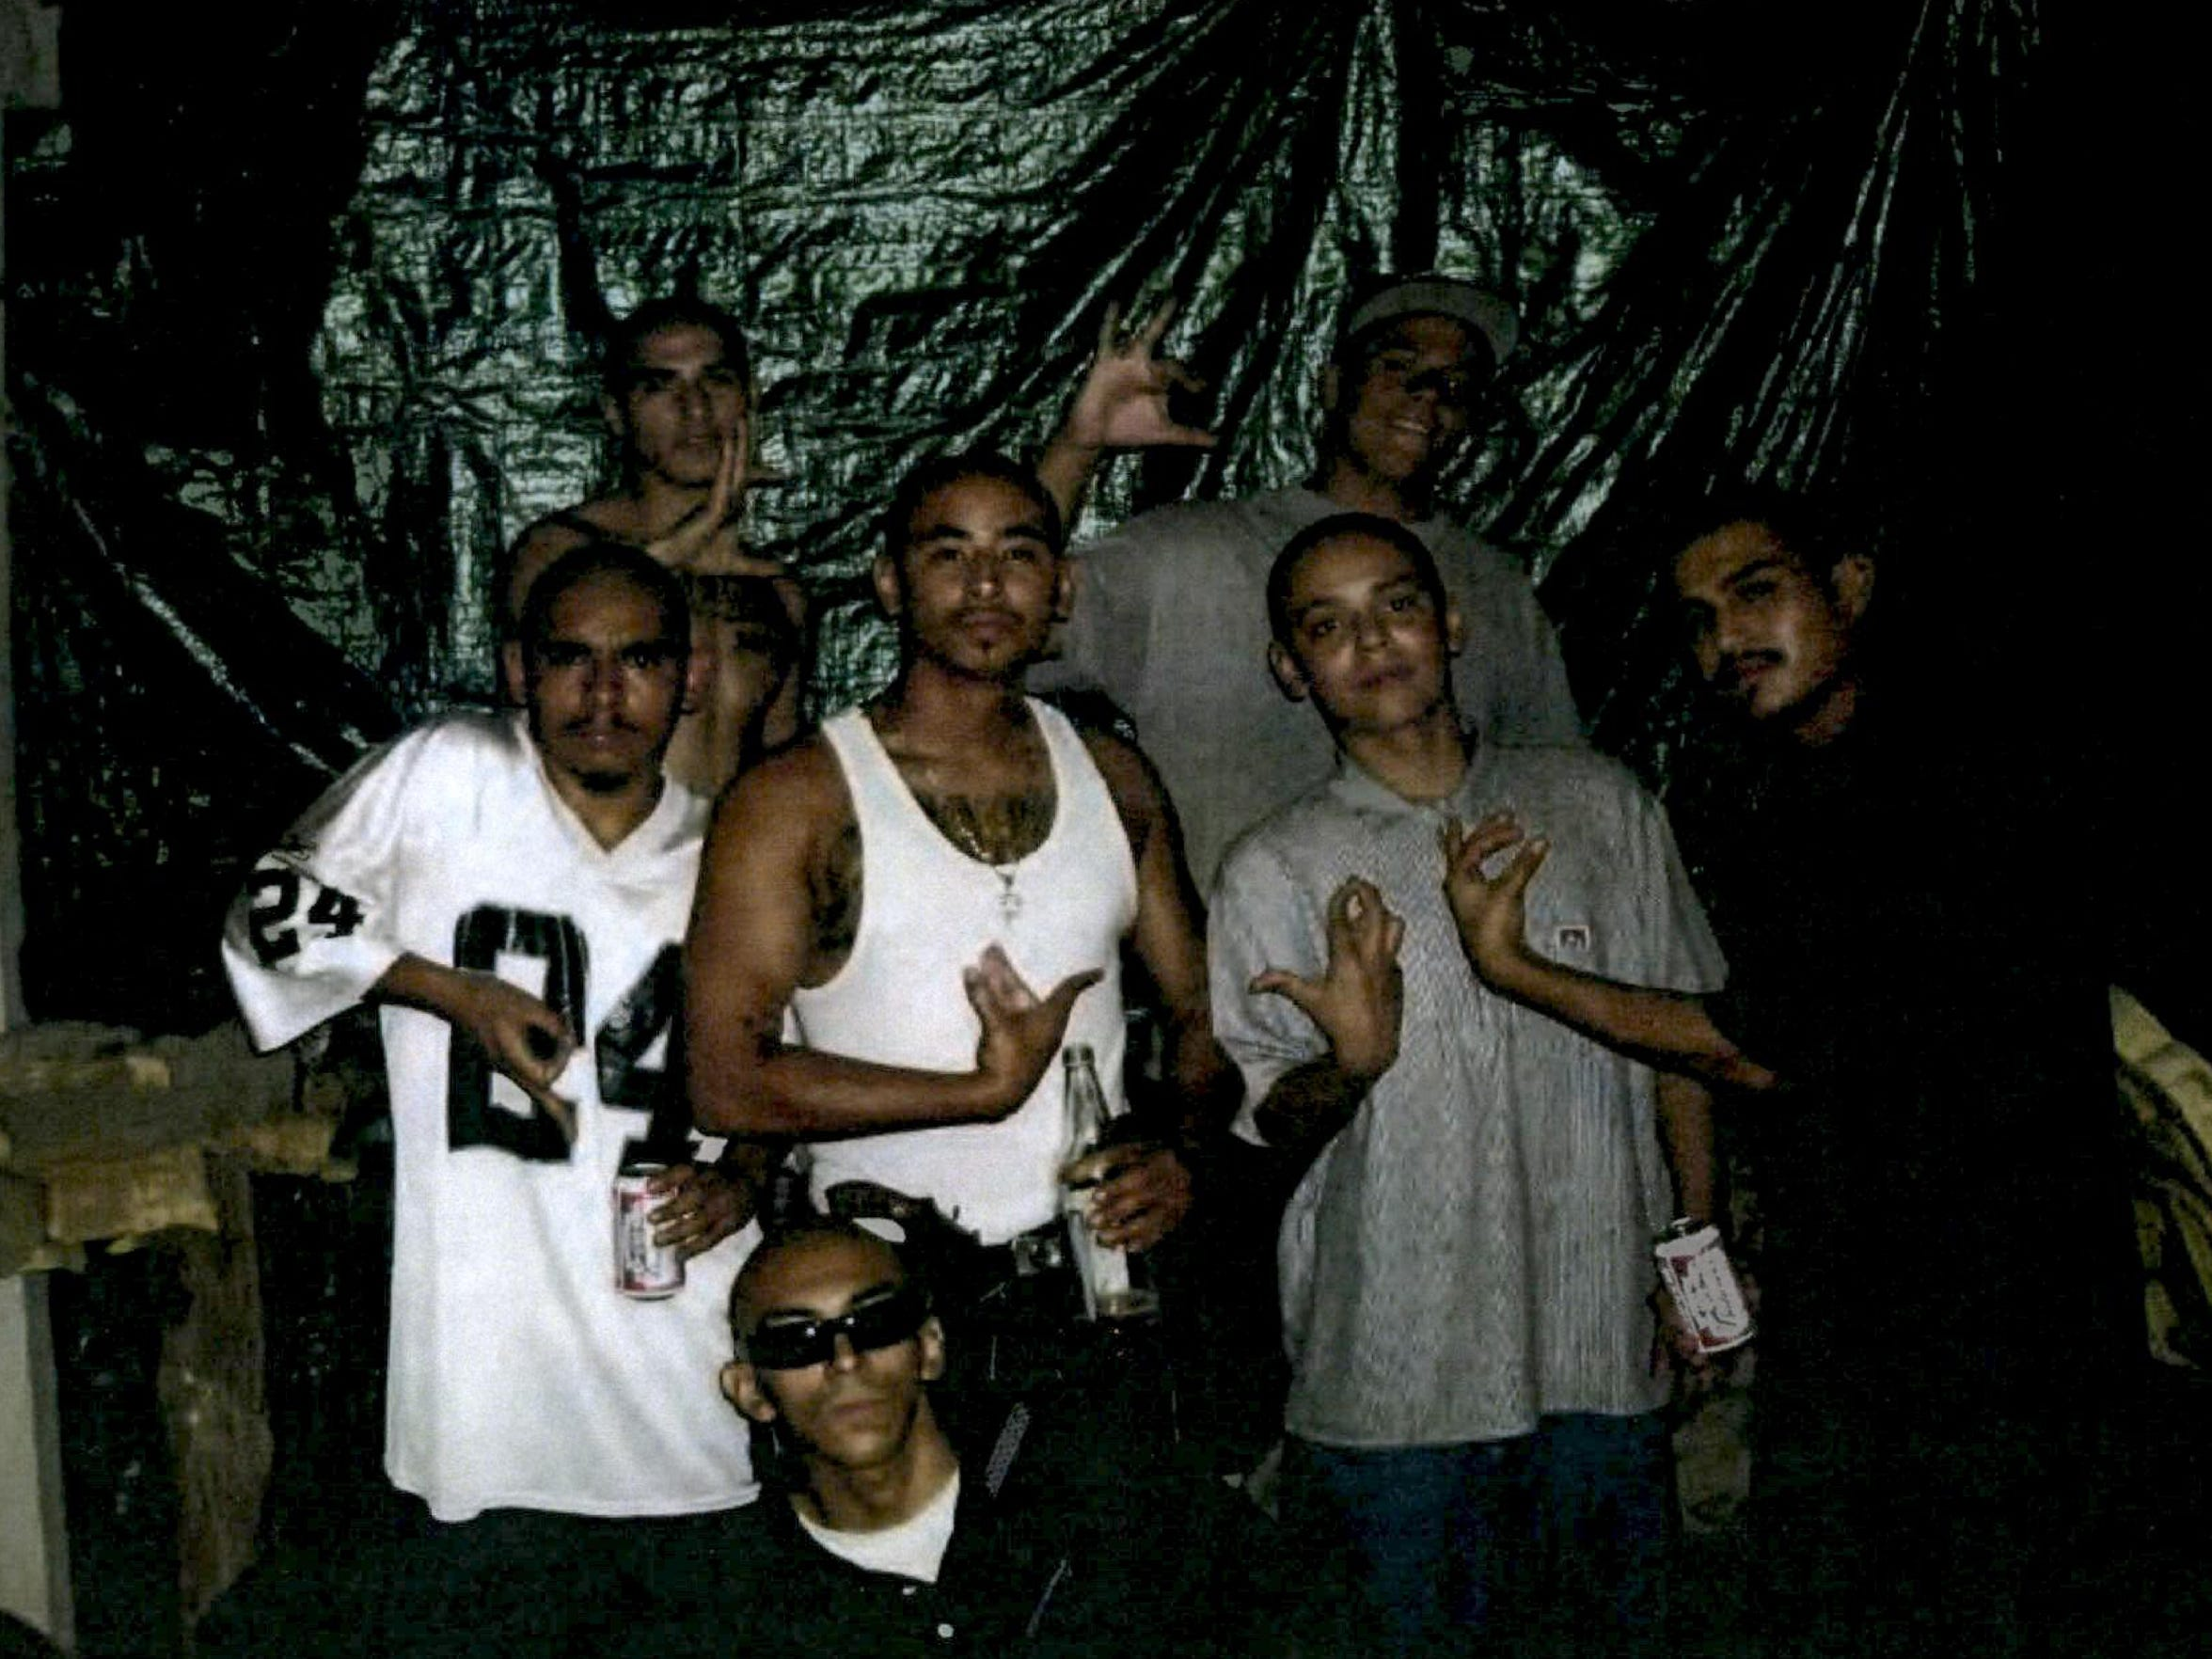 A group of unidentified men flash gang signs in a photograph seized during a 2011 police raid.